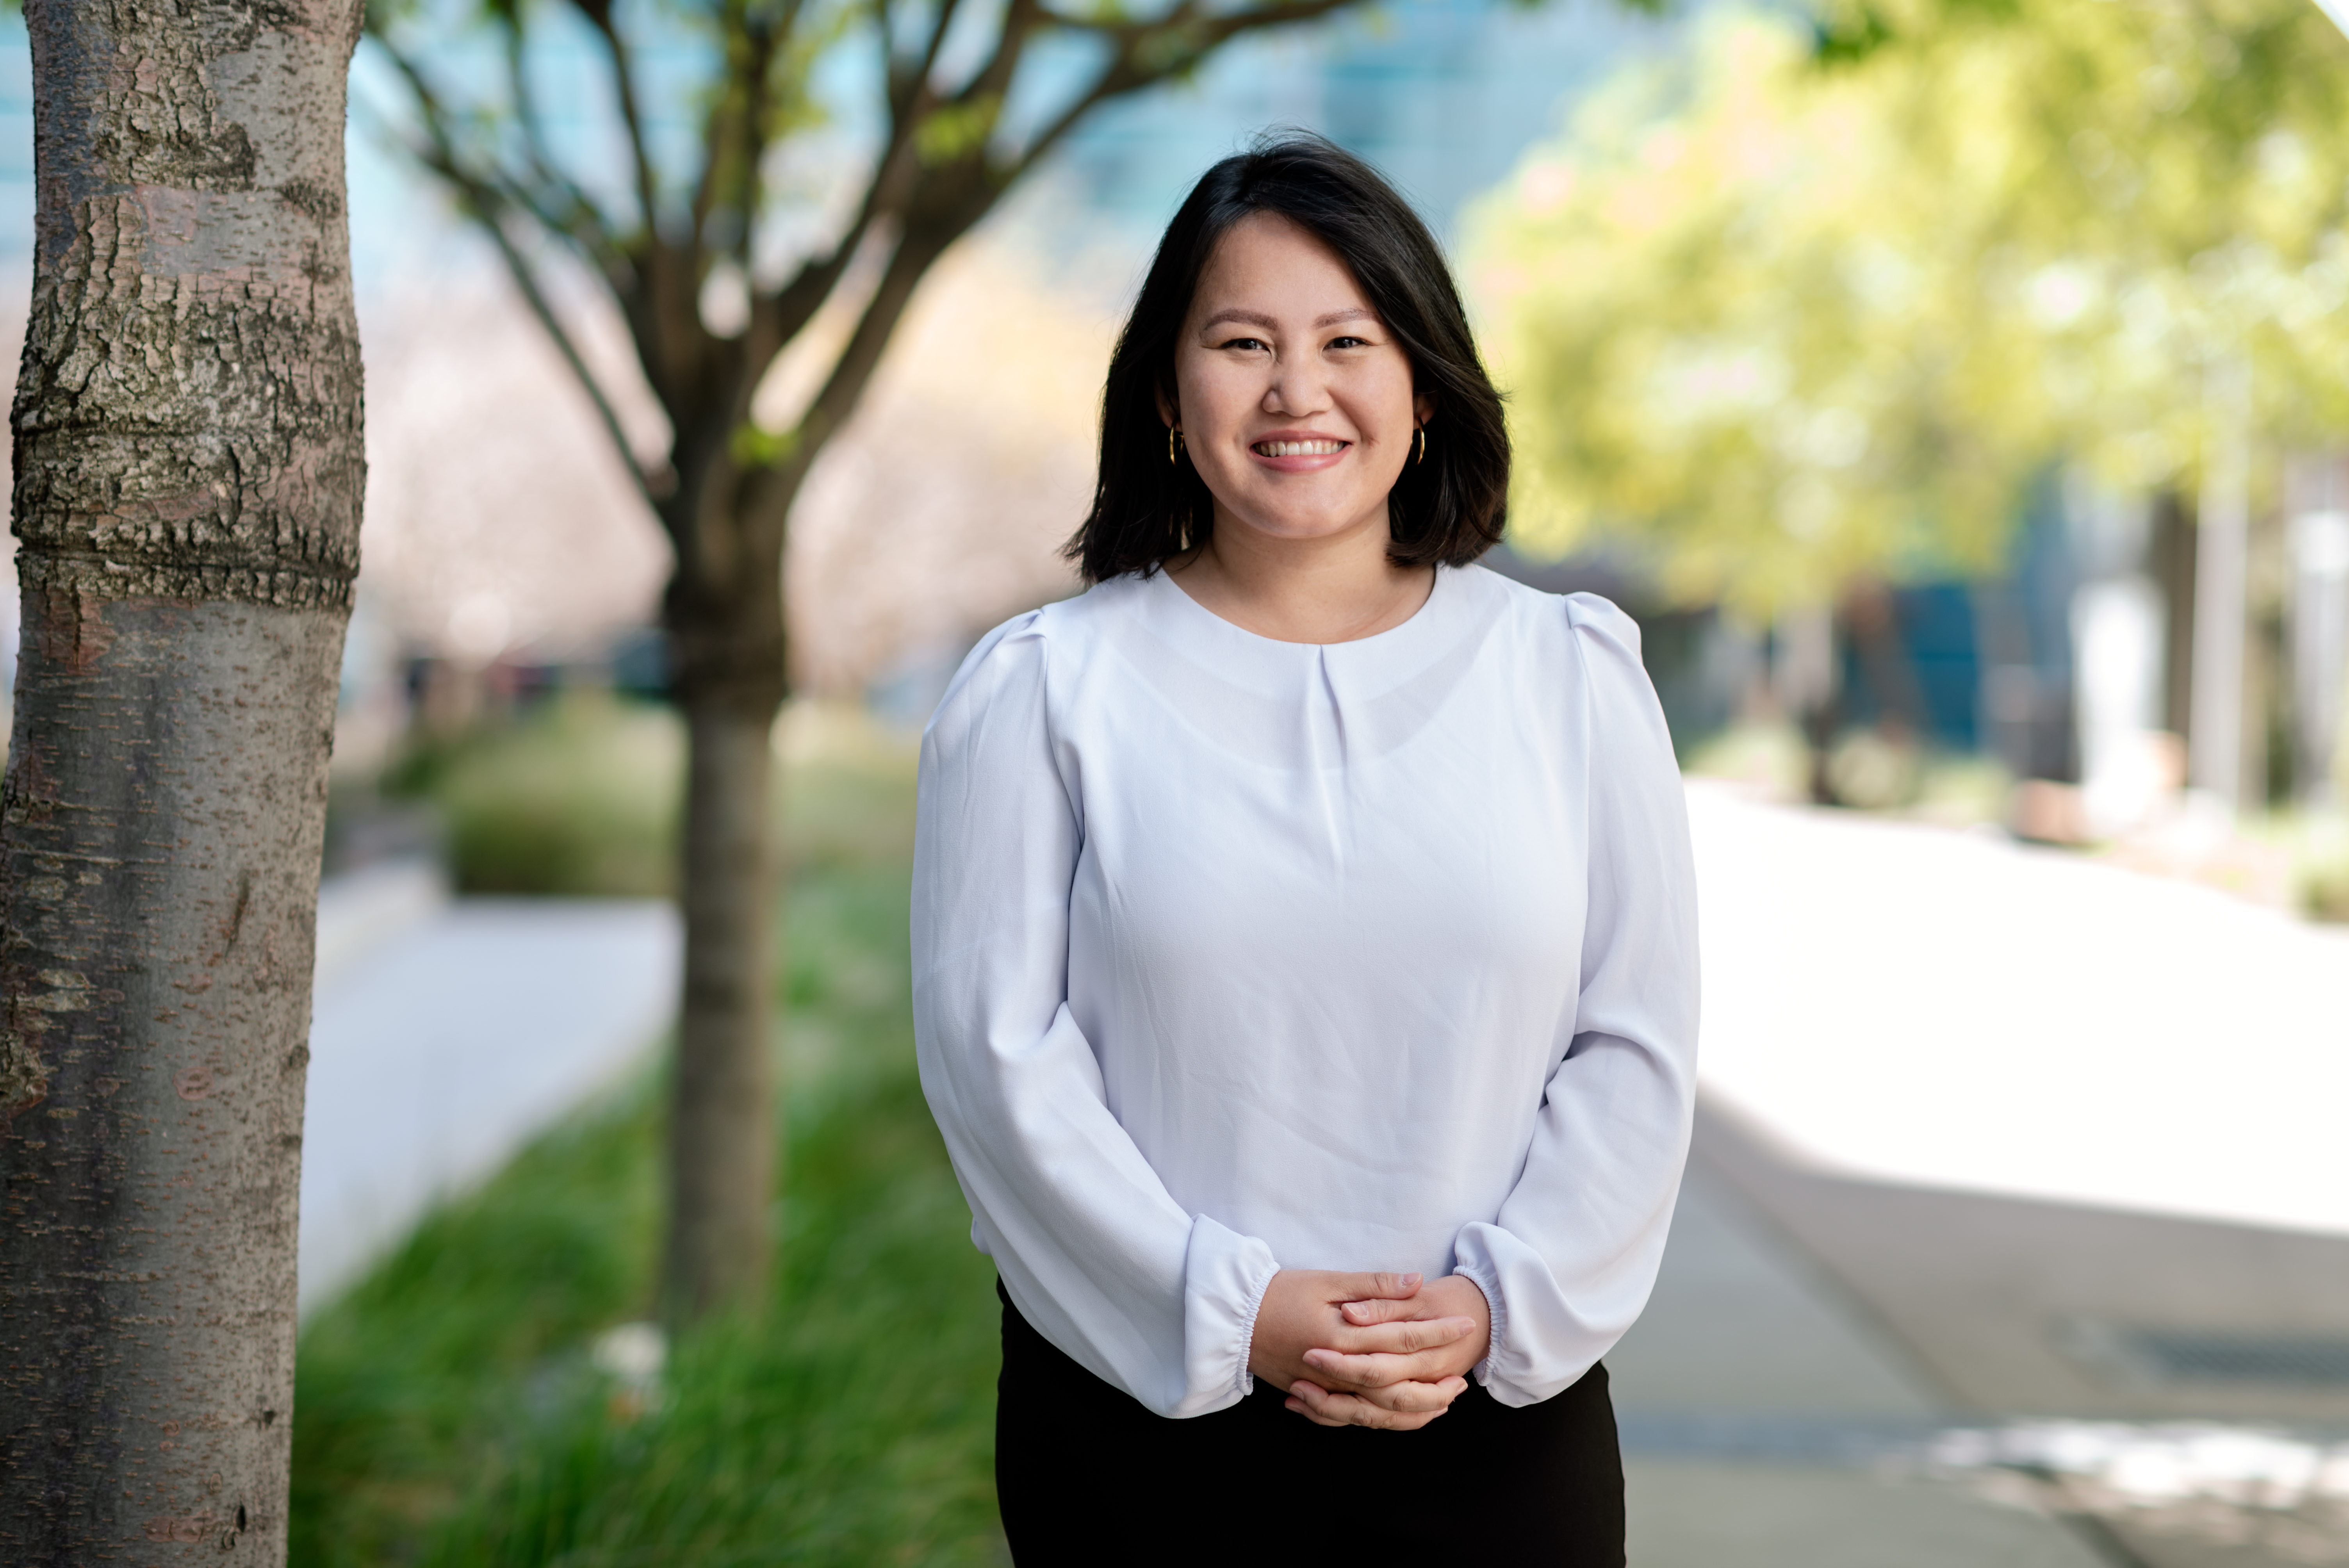 DEI Director Linh Huynh, standing outside Gladstone Institutes